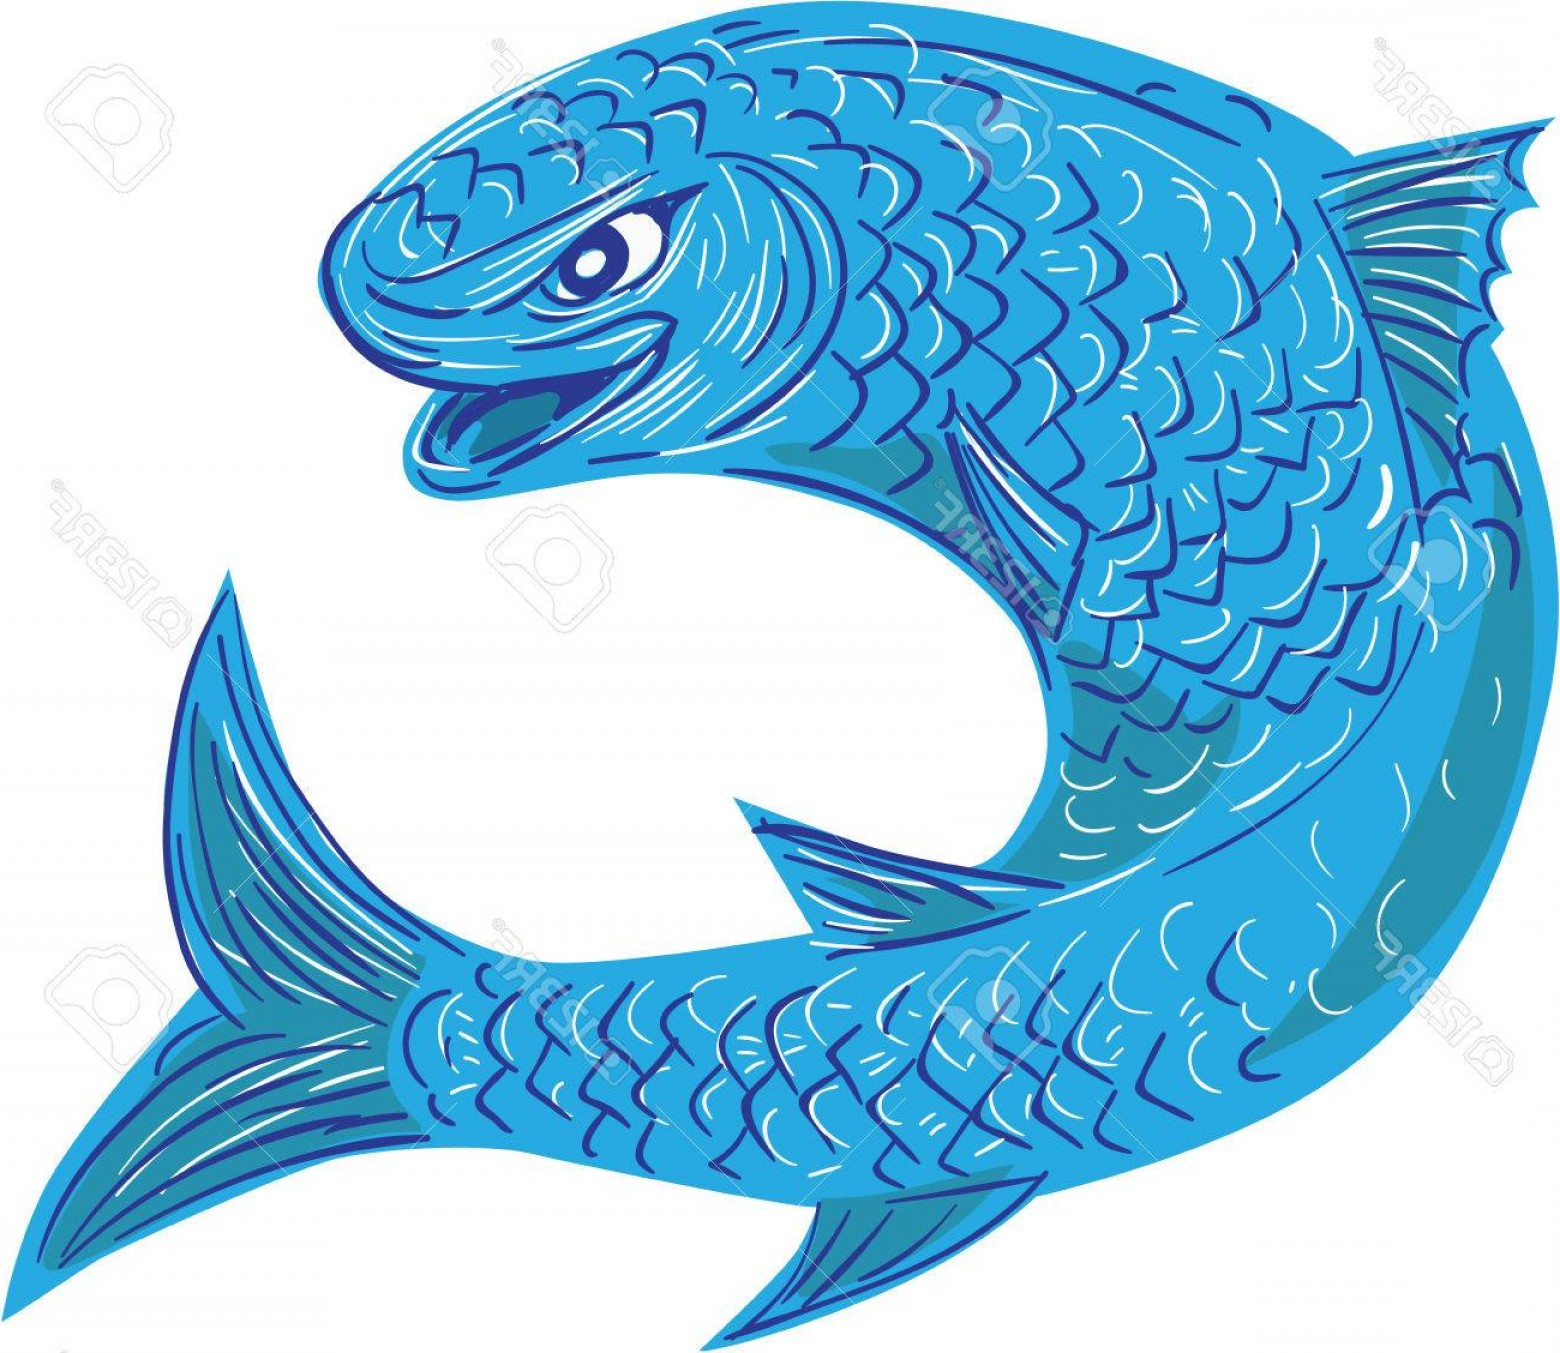 Mullet Vector Logo: Photostock Vector Drawing Sketch Style Illustration Of A Mullet Or Grey Mullet From A Family Mugilidae In The Order Of